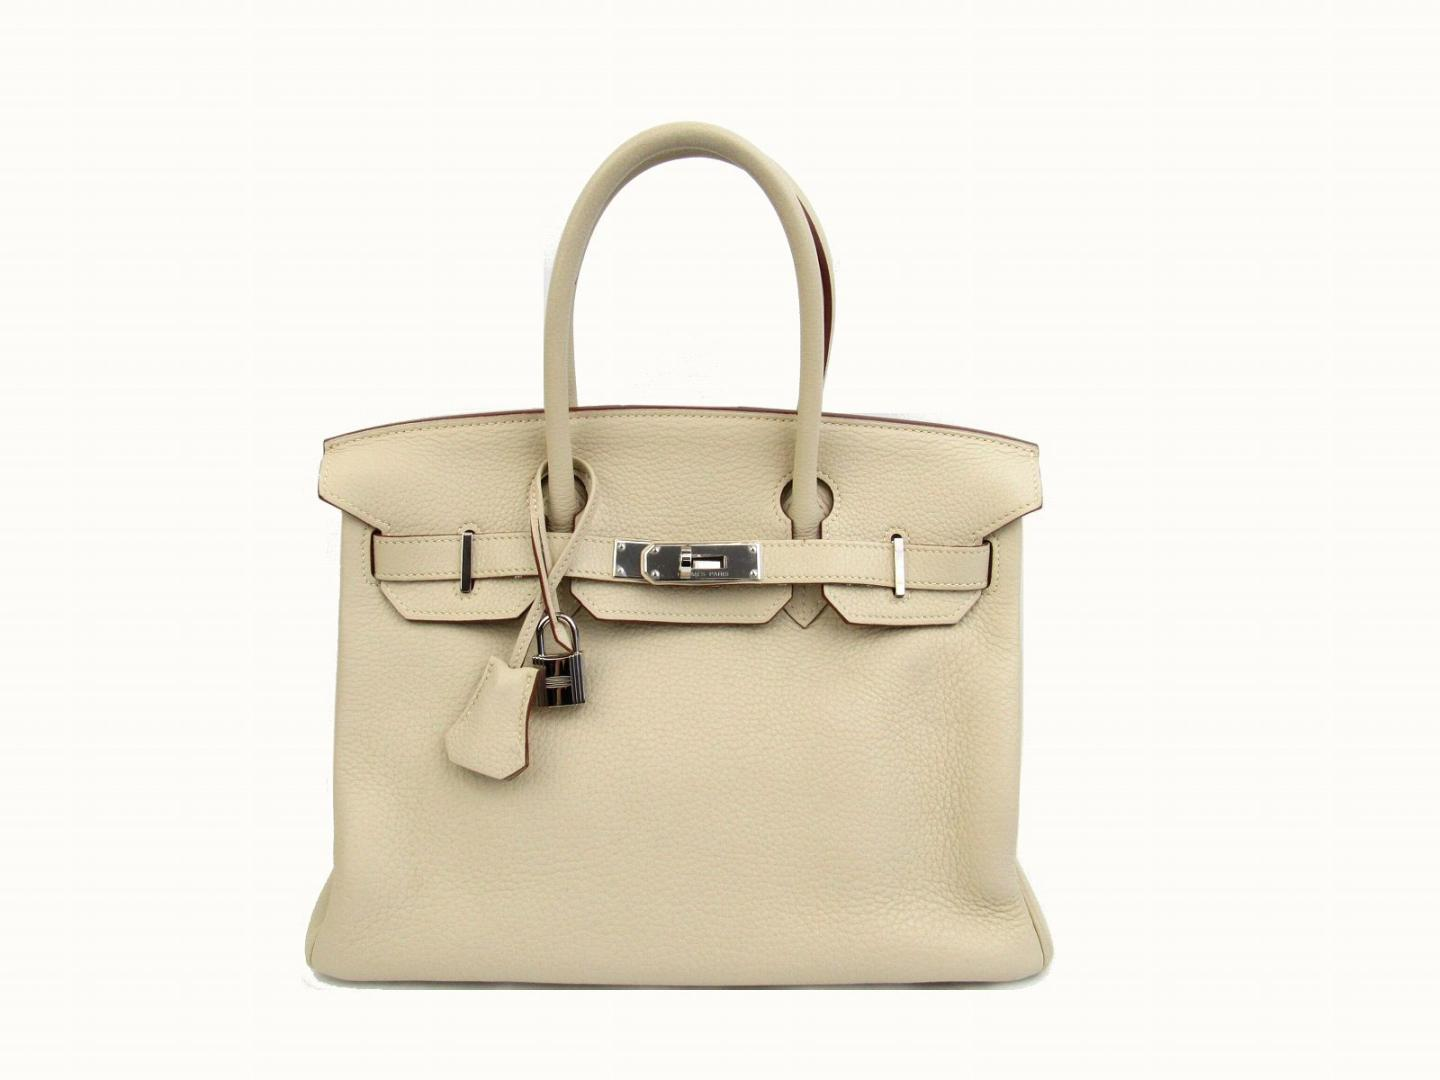 Authentic HERMES Birkin 30 Hand tote Bag Clemence leather Parchemin Beige  SHW e58ce1979cf5e